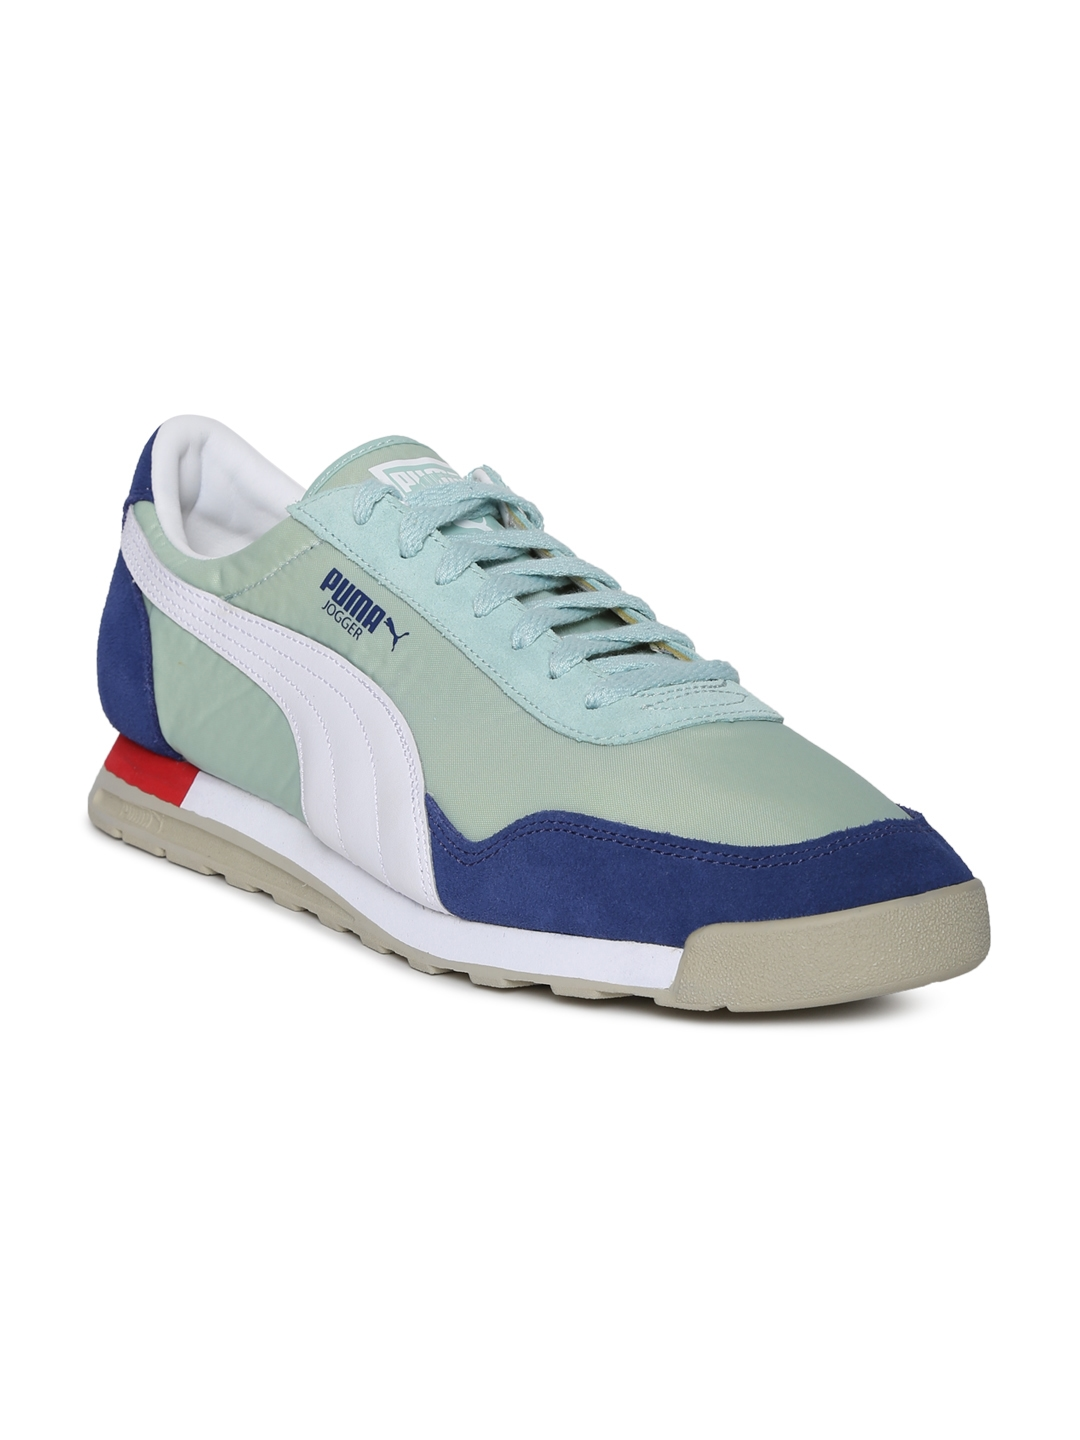 Buy Puma Unisex Blue Jogger OG Sneakers - Casual Shoes for Unisex ... 3946f350e